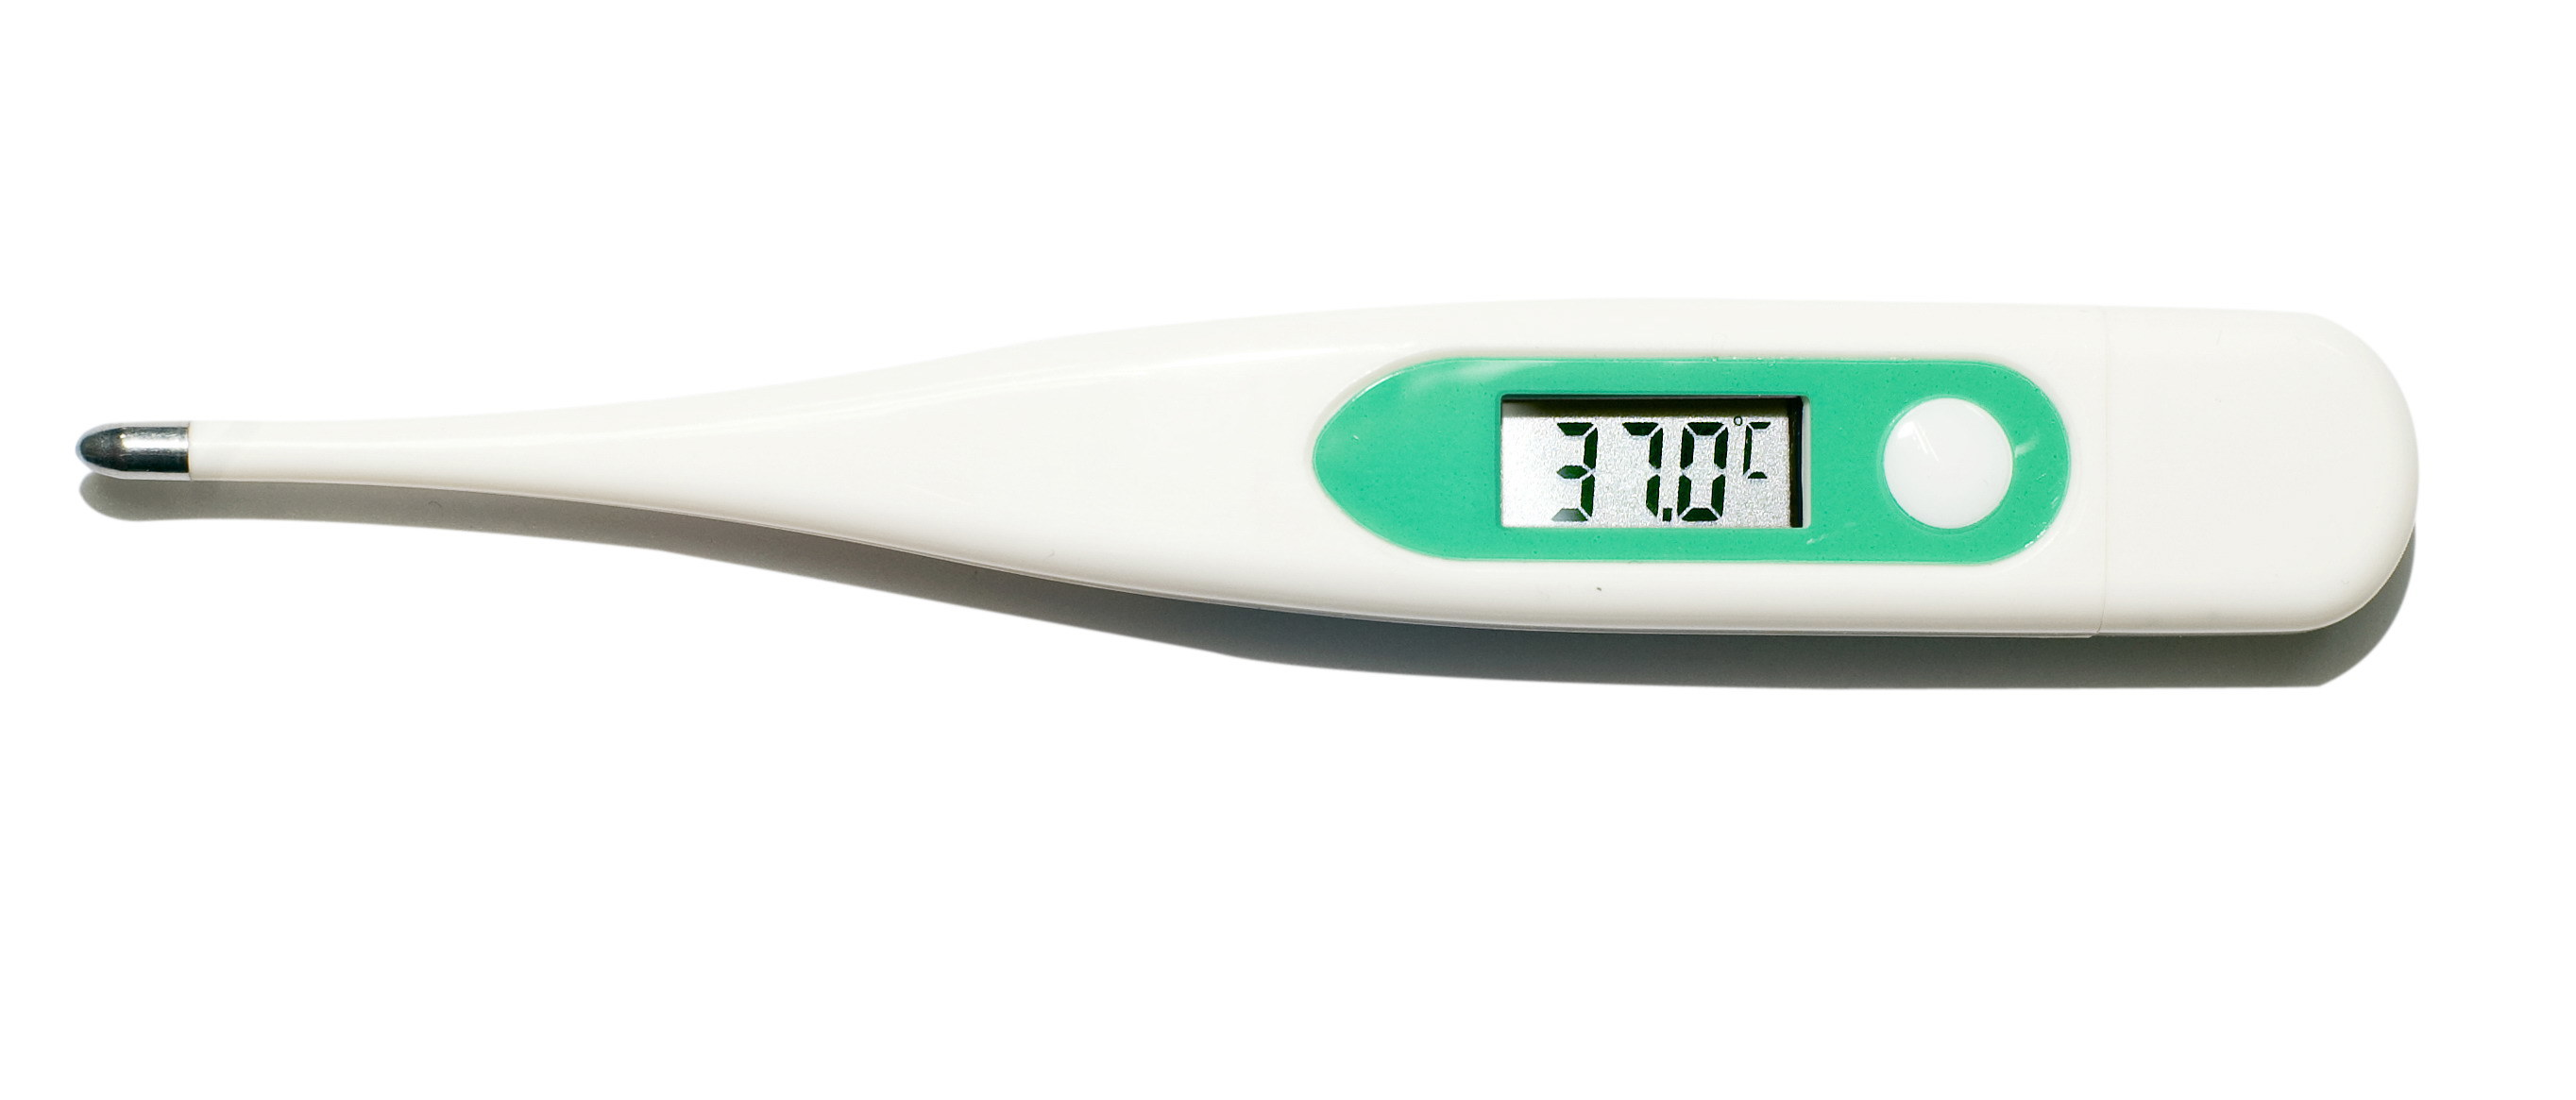 china clinical digital thermometer tdb 3f china. Black Bedroom Furniture Sets. Home Design Ideas